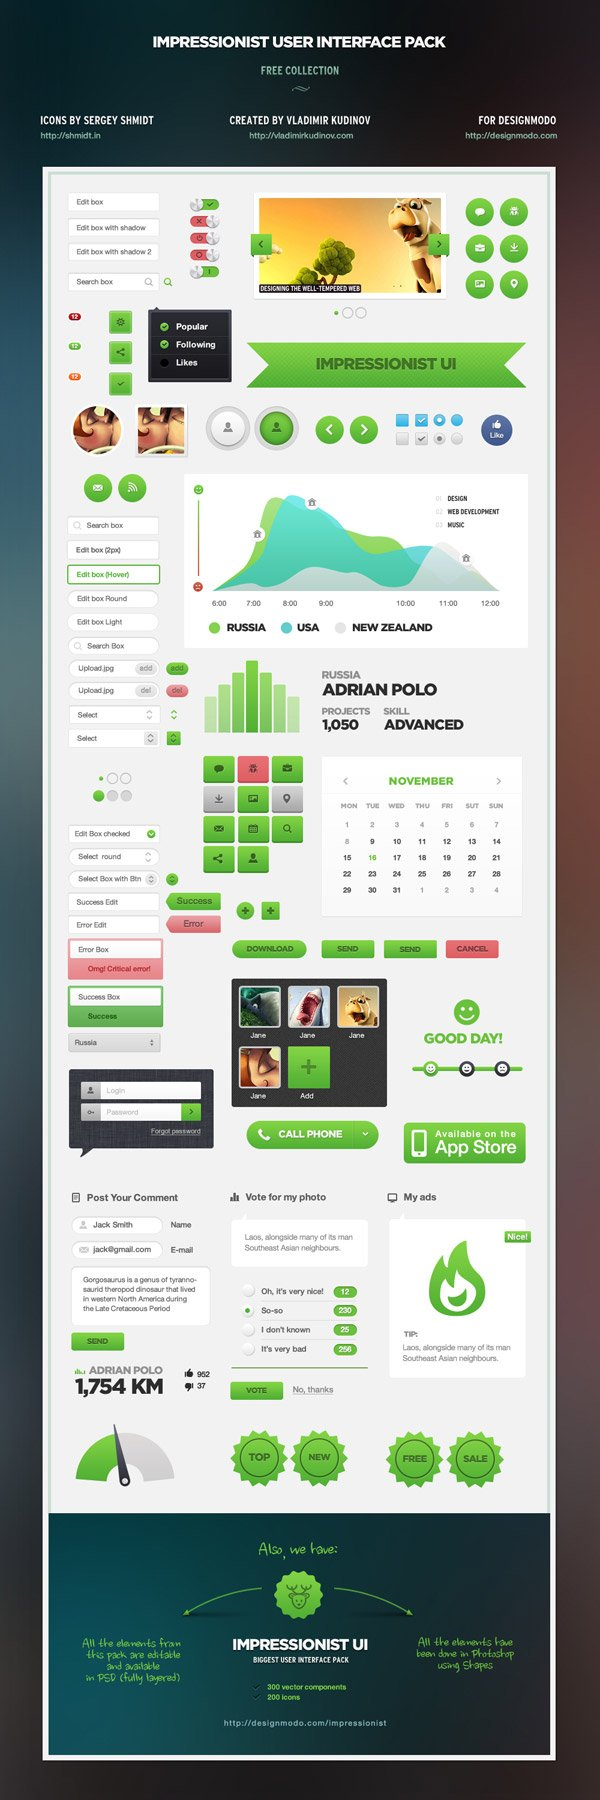 Impressionist UI Free User Interface Pack